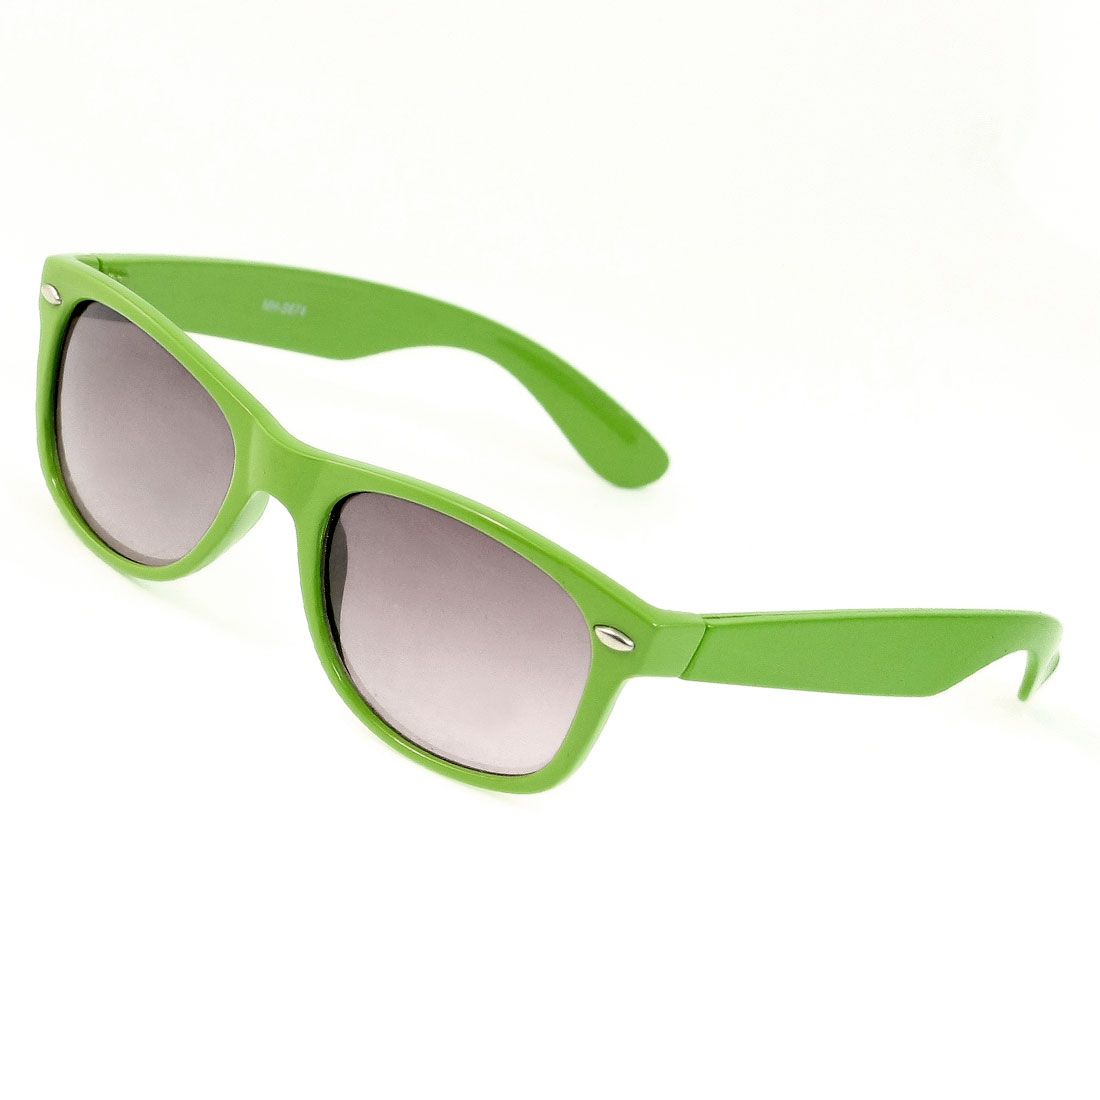 Light Green Plastic Single Bridge Gray Lens Eyewear Sunglasses for Lady